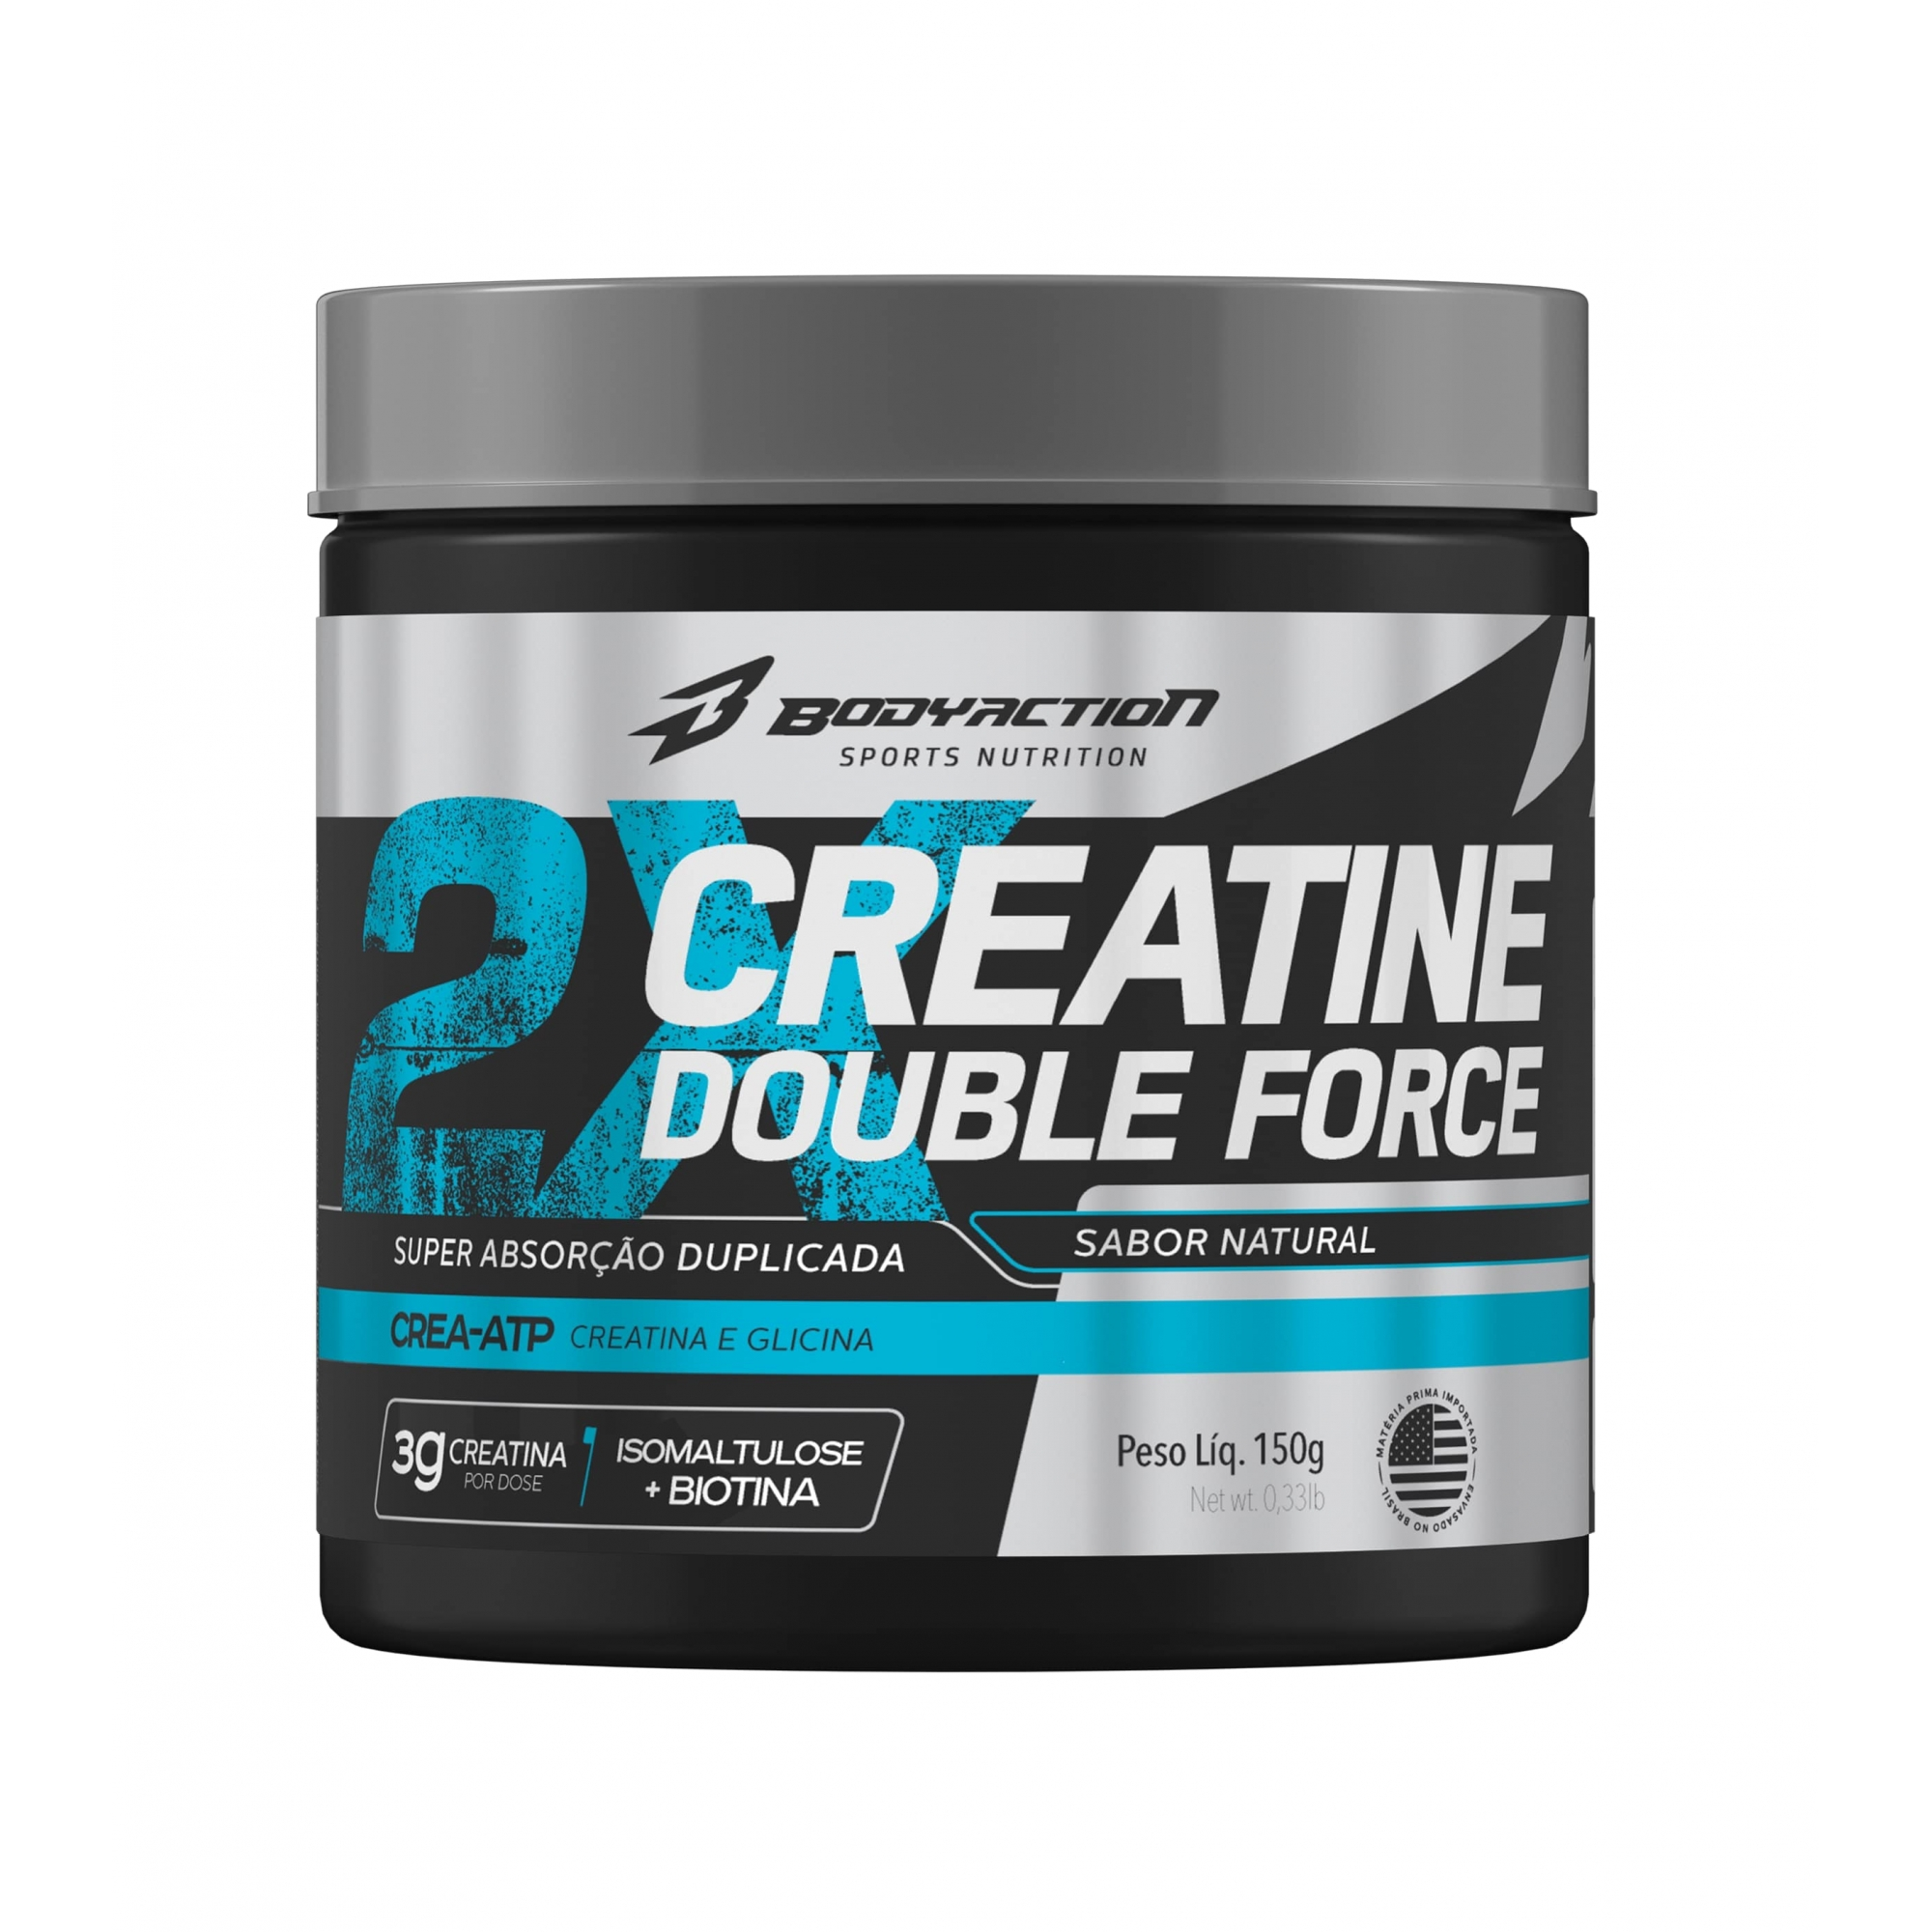 CREATINE DOUBLE FORCE